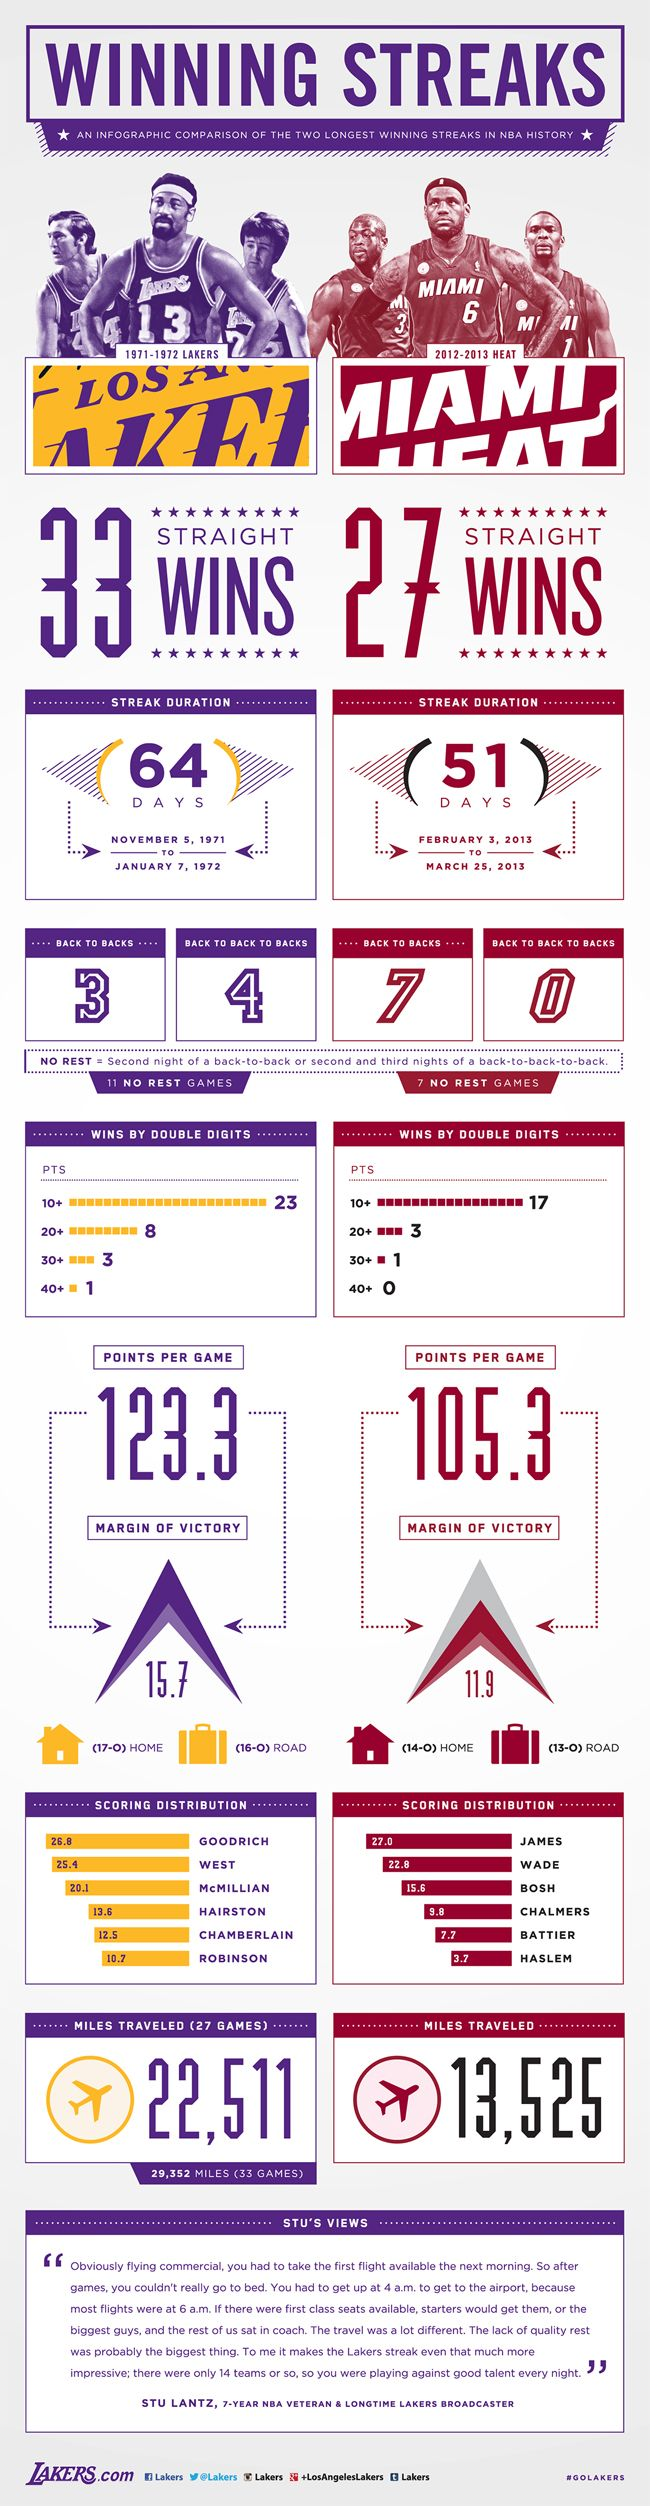 INFOGRAPHIC: 33 > 27 | THE OFFICIAL SITE OF THE LOS ANGELES LAKERS